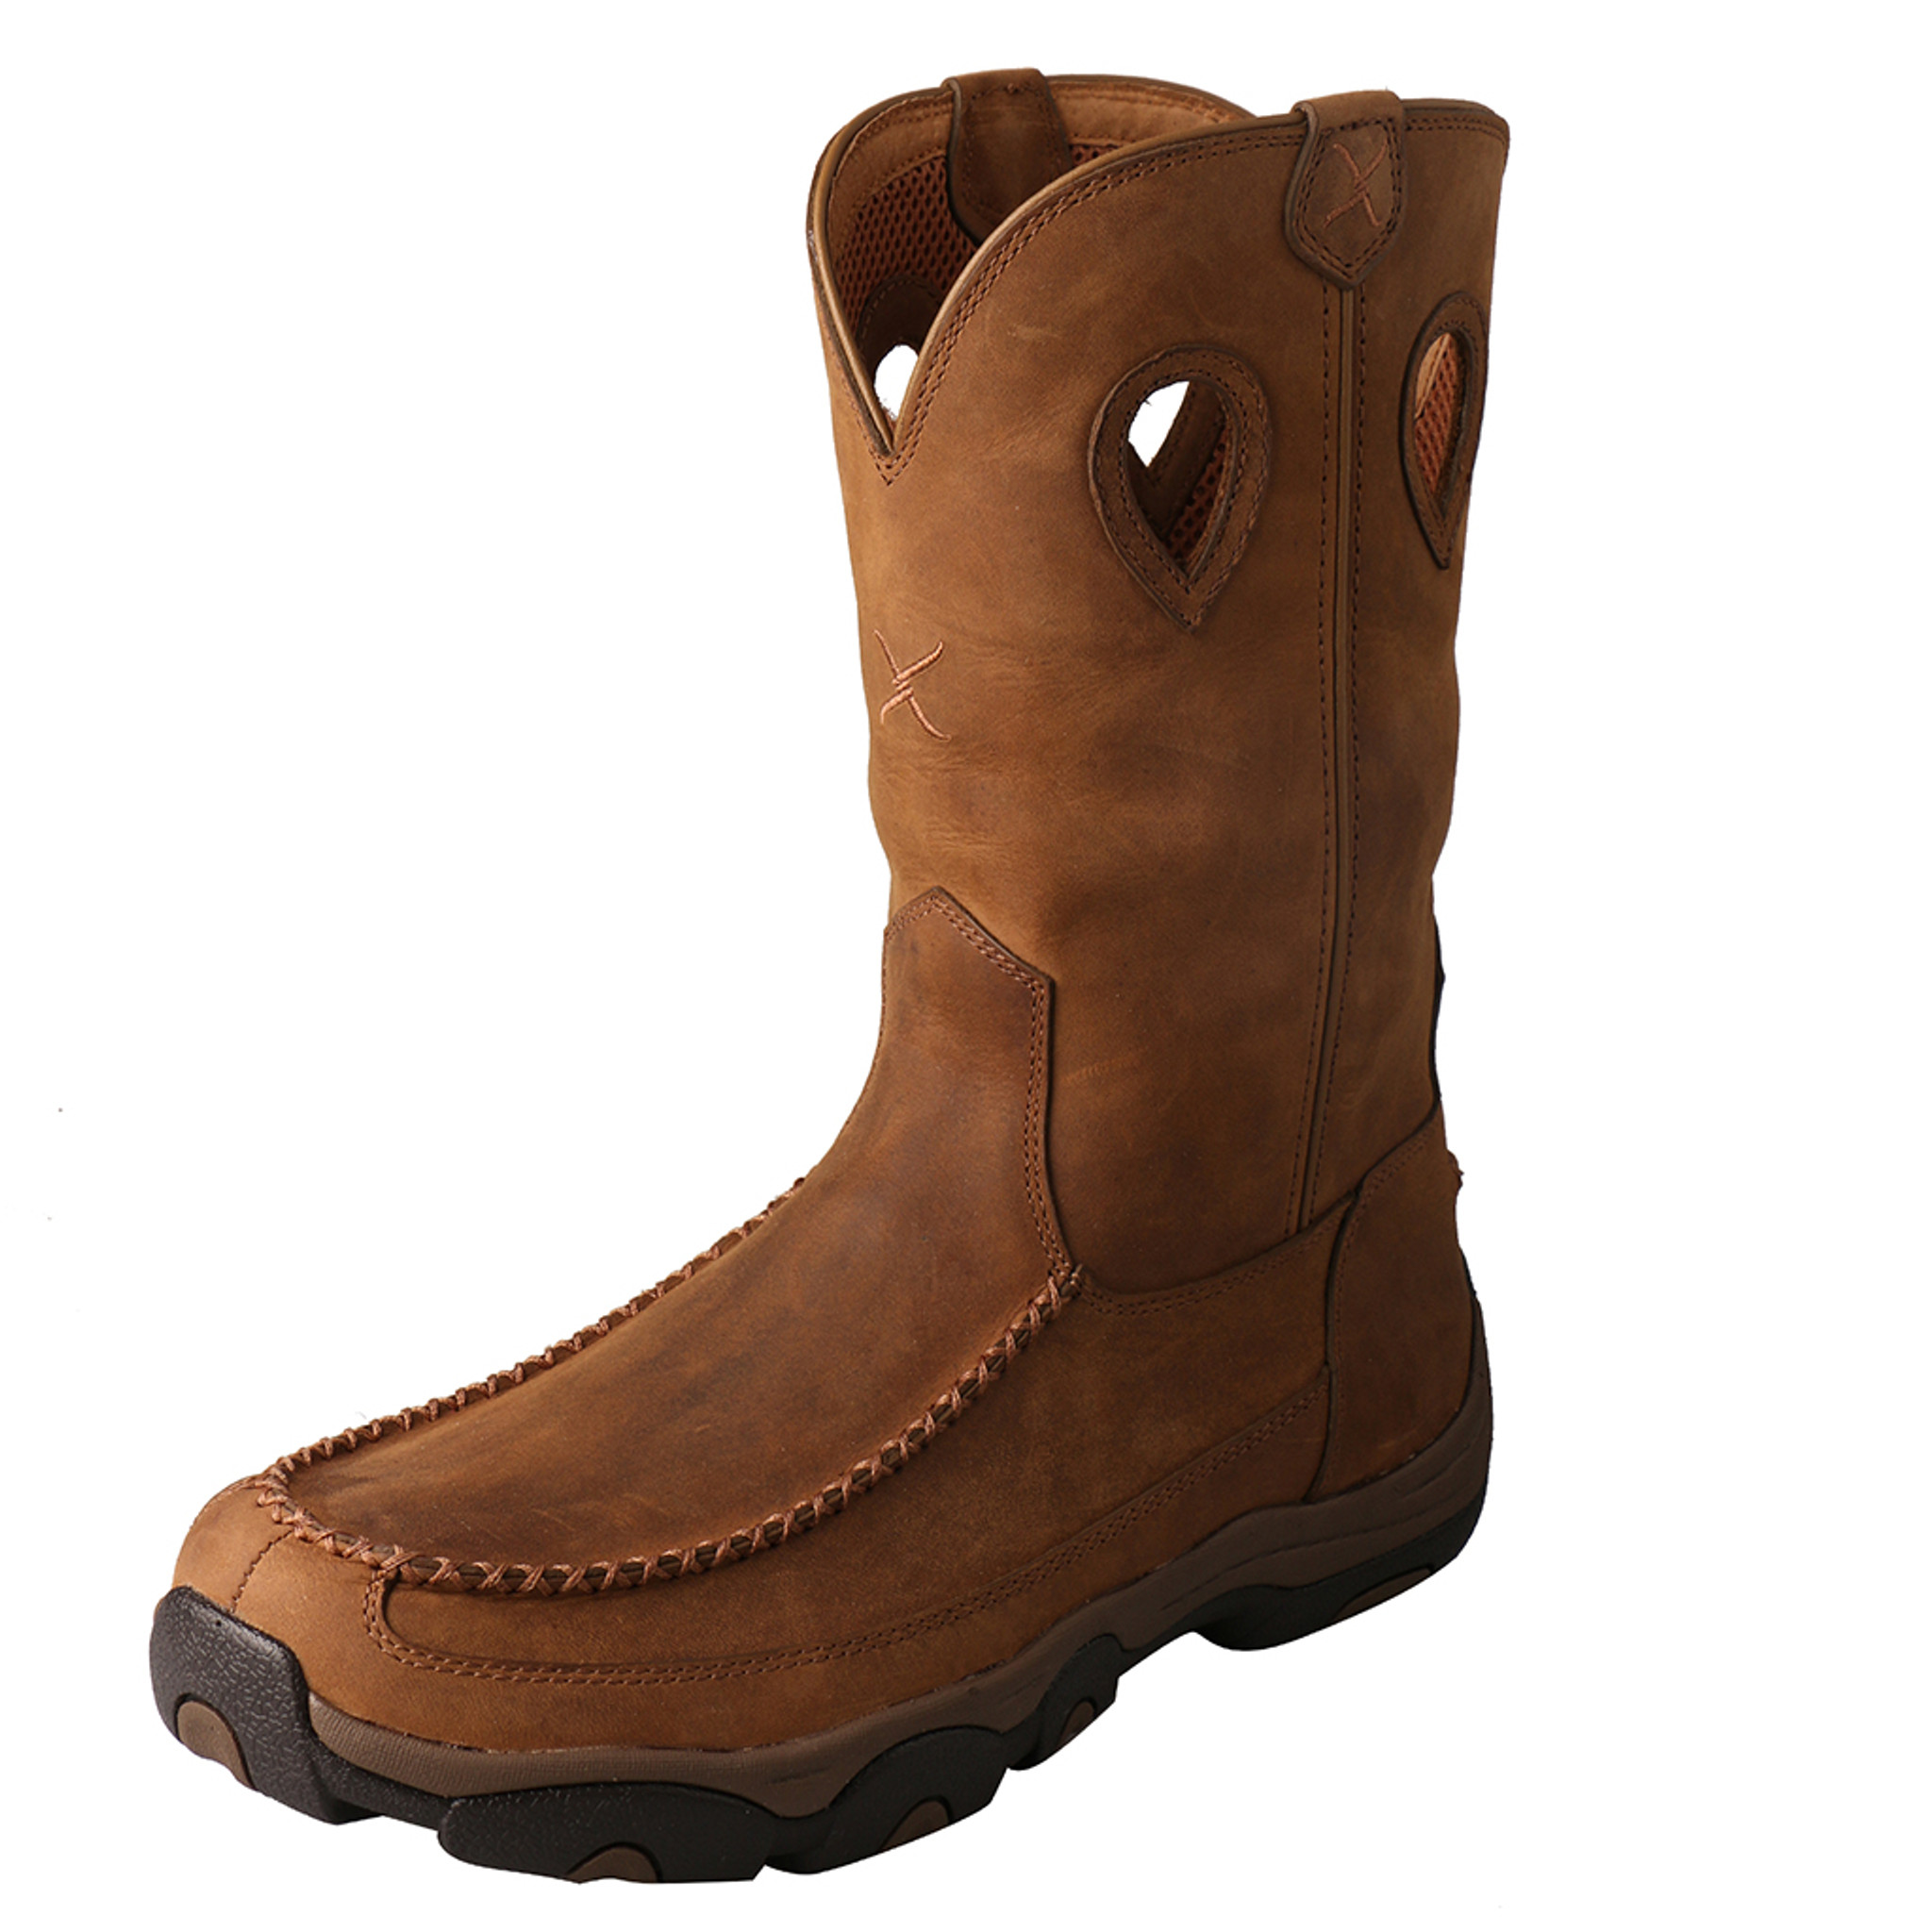 Twisted X Boot, Comp Toe, Hiker, Brown